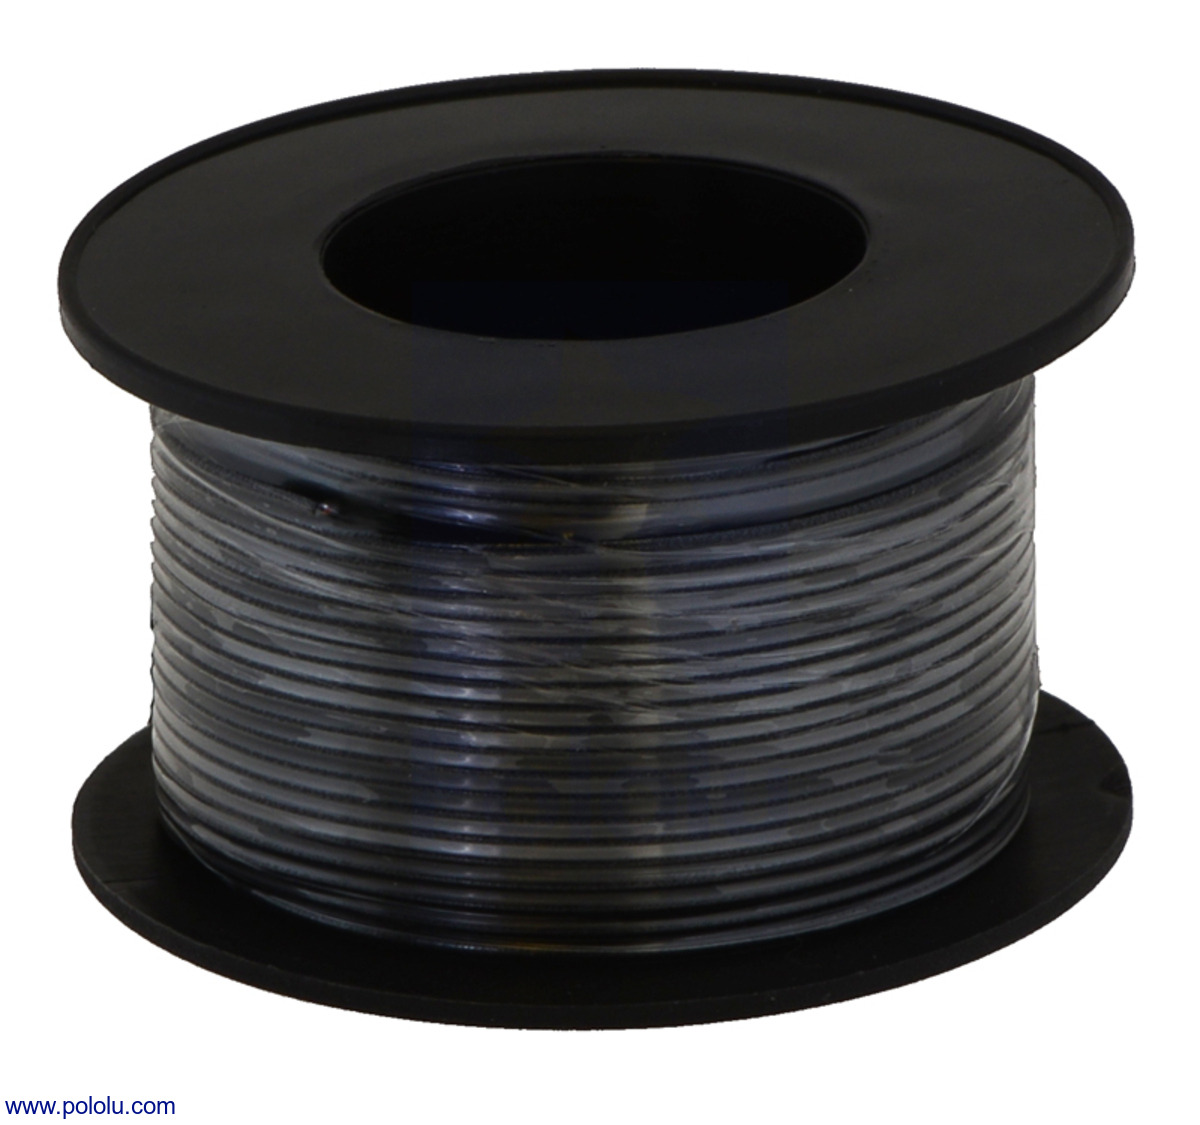 Pololu stranded wire black 20 awg 40 feet stranded wire black 20 awg 40 feet greentooth